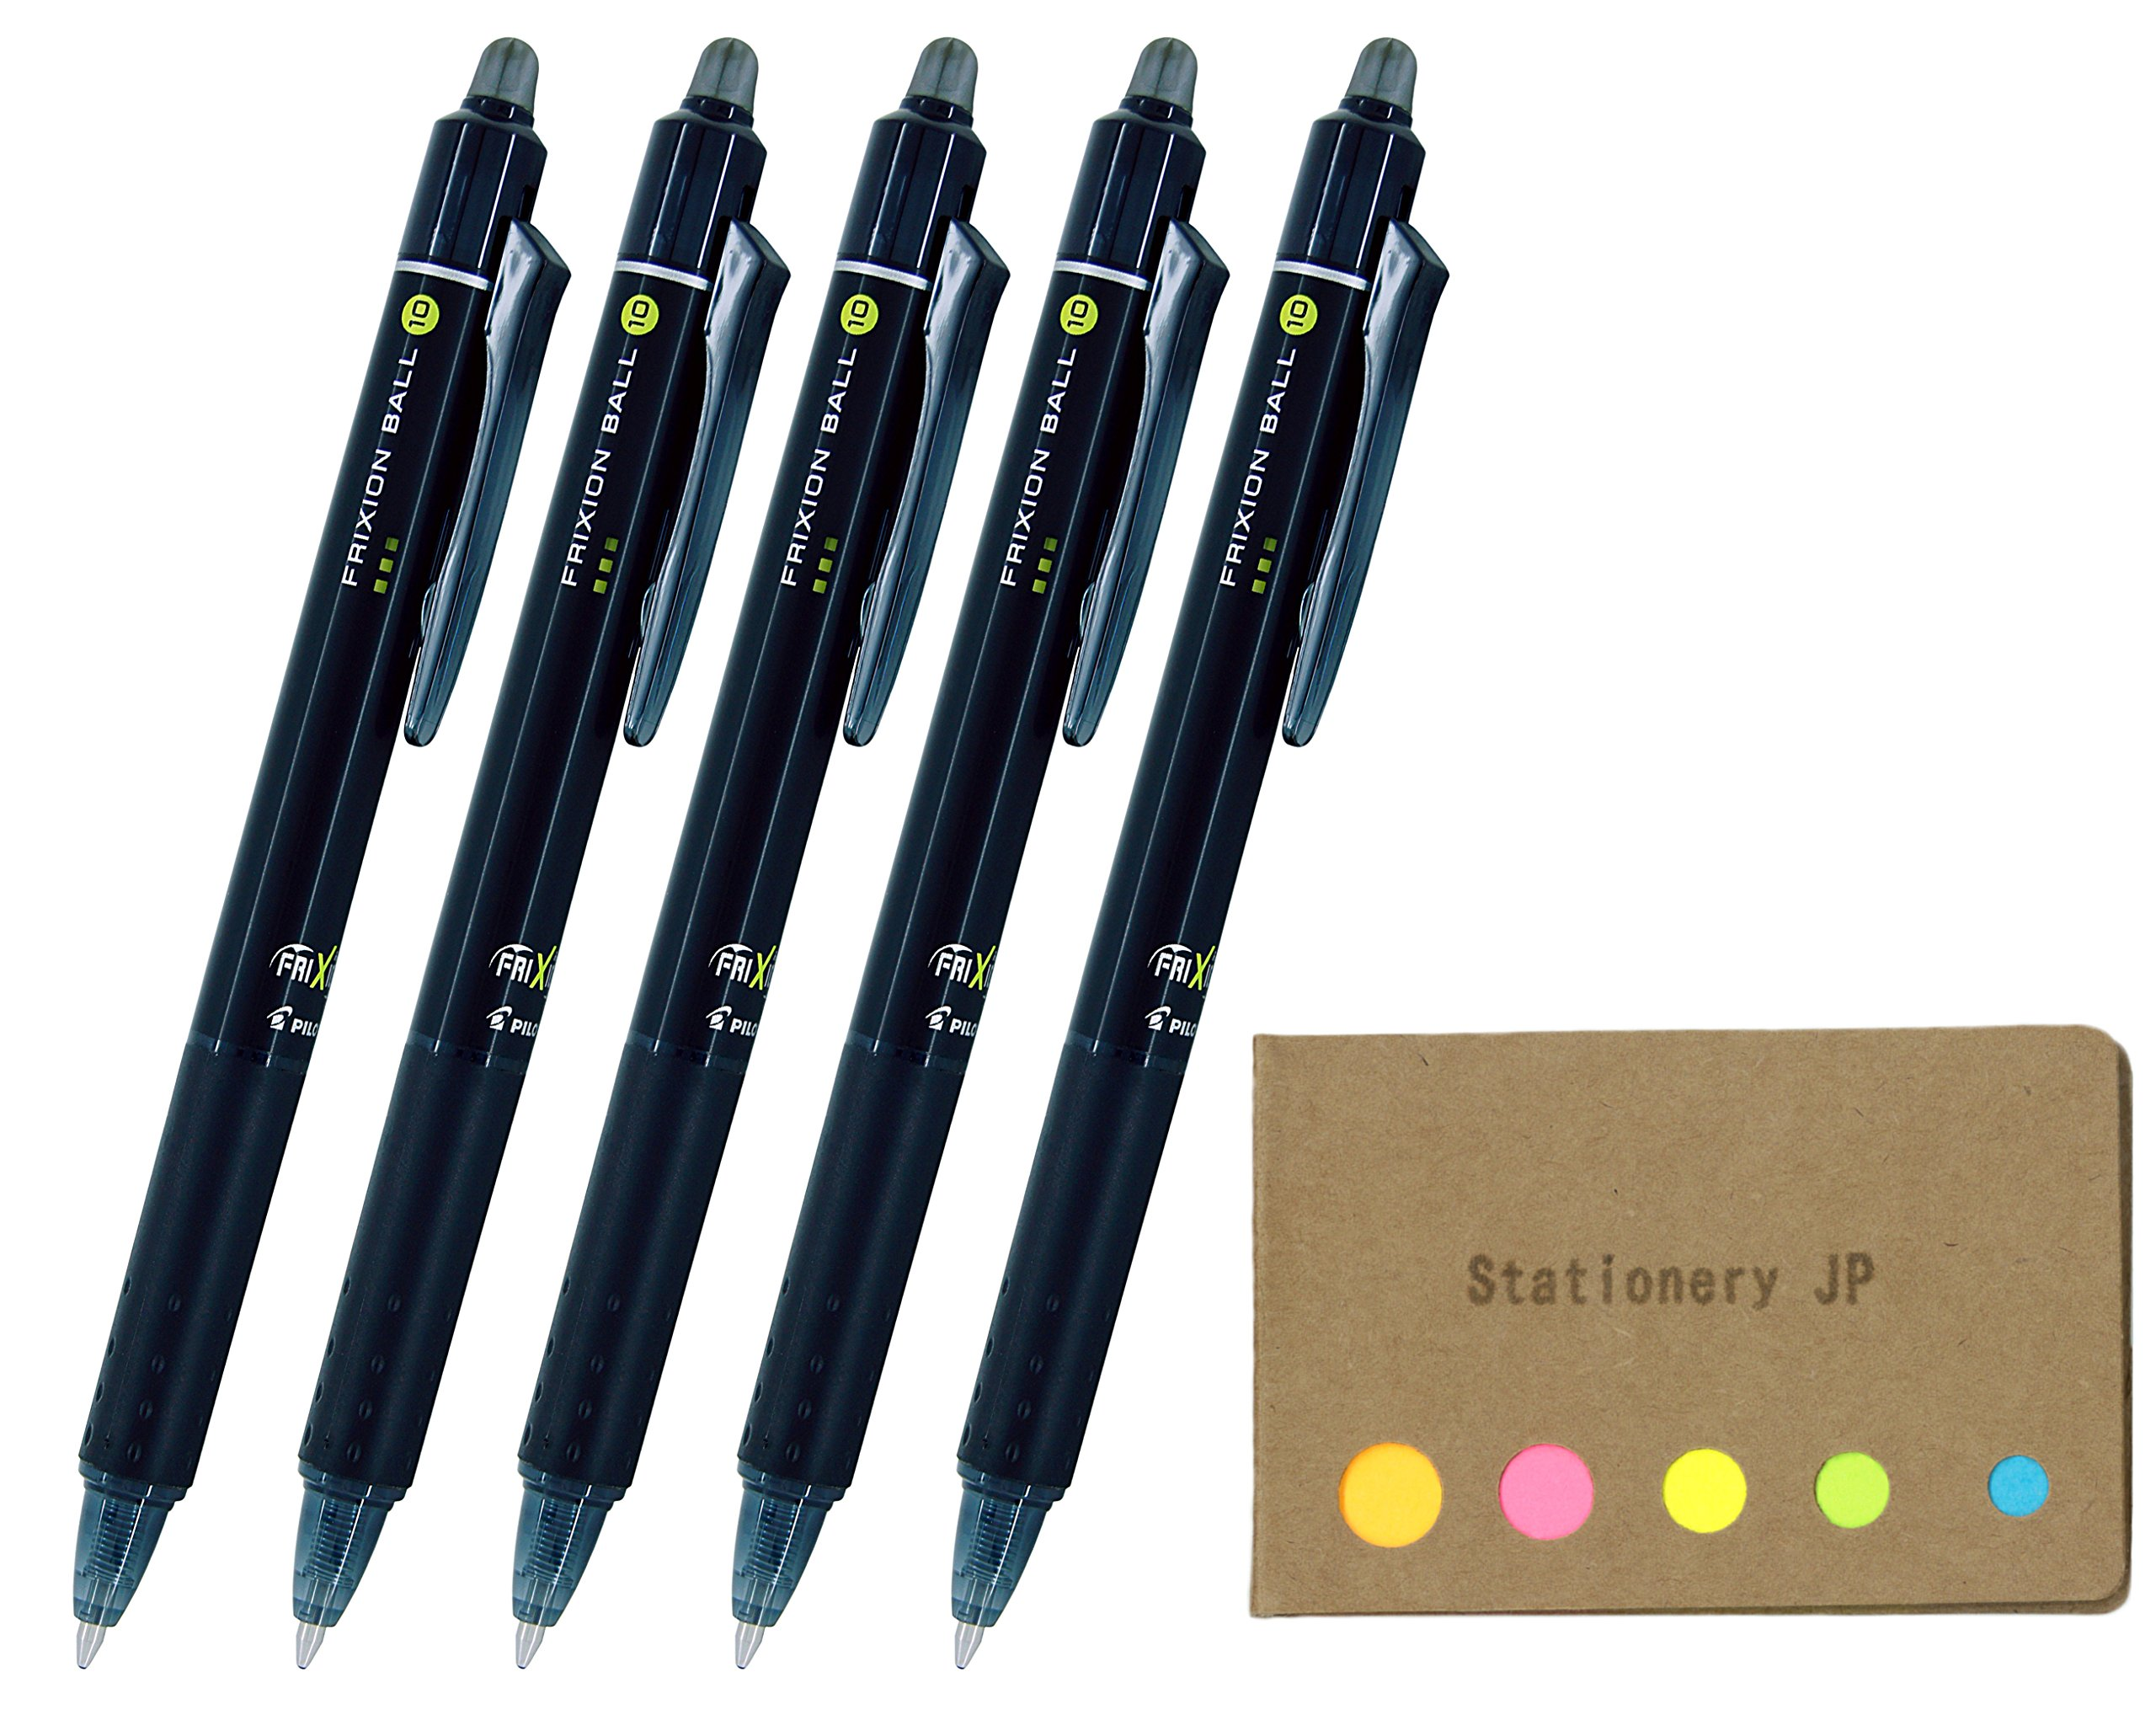 Pilot FriXion Ball Knock Retractable Erasable Gel Ink Pens, Bold Point 1.0mm, Black Ink, 5-Pack, Sticky Notes Value Set